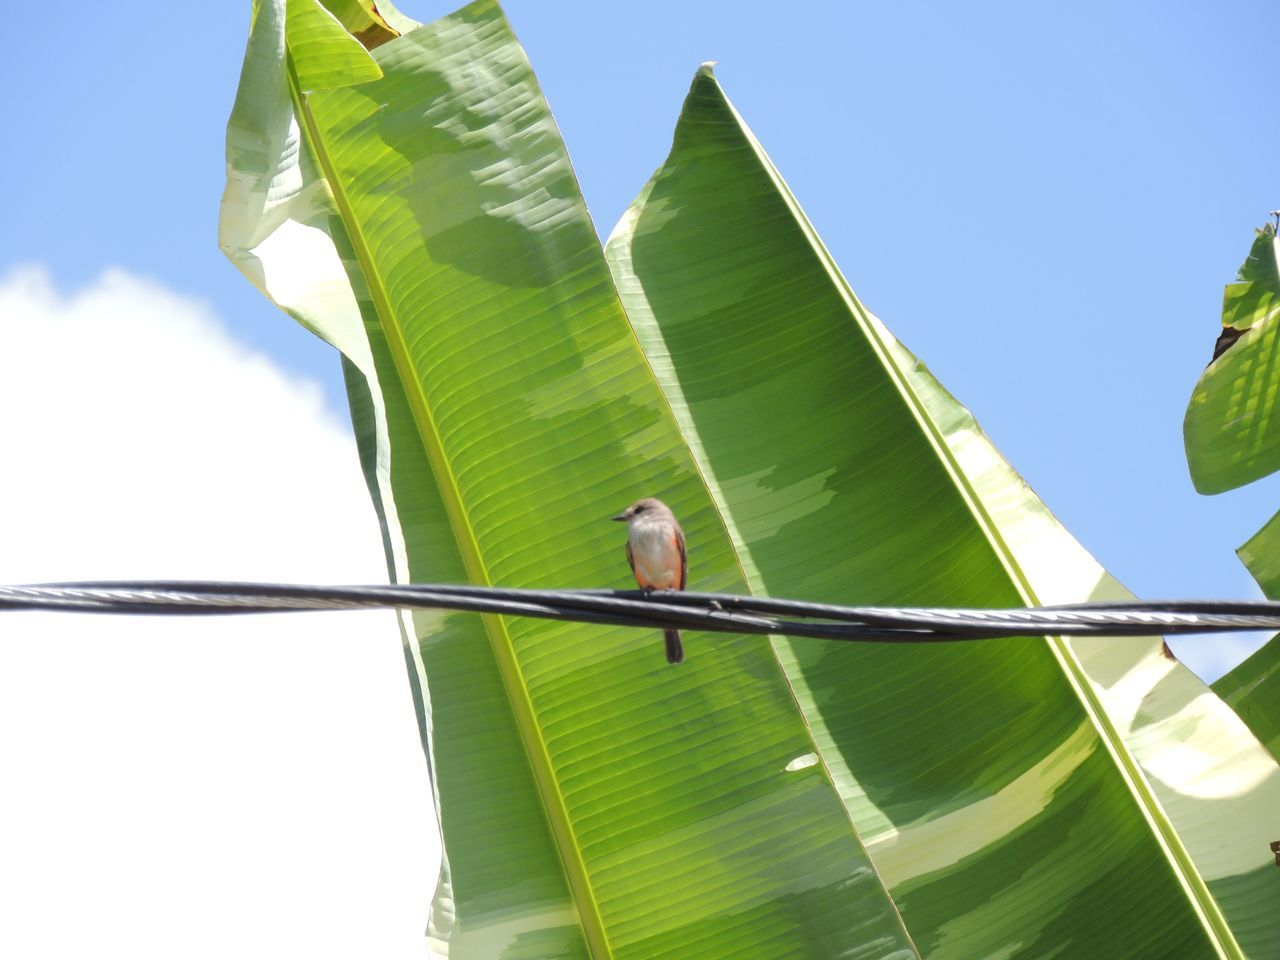 low angle view, day, bird, green color, sky, one animal, animal themes, outdoors, nature, leaf, beauty in nature, no people, parrot, clear sky, perching